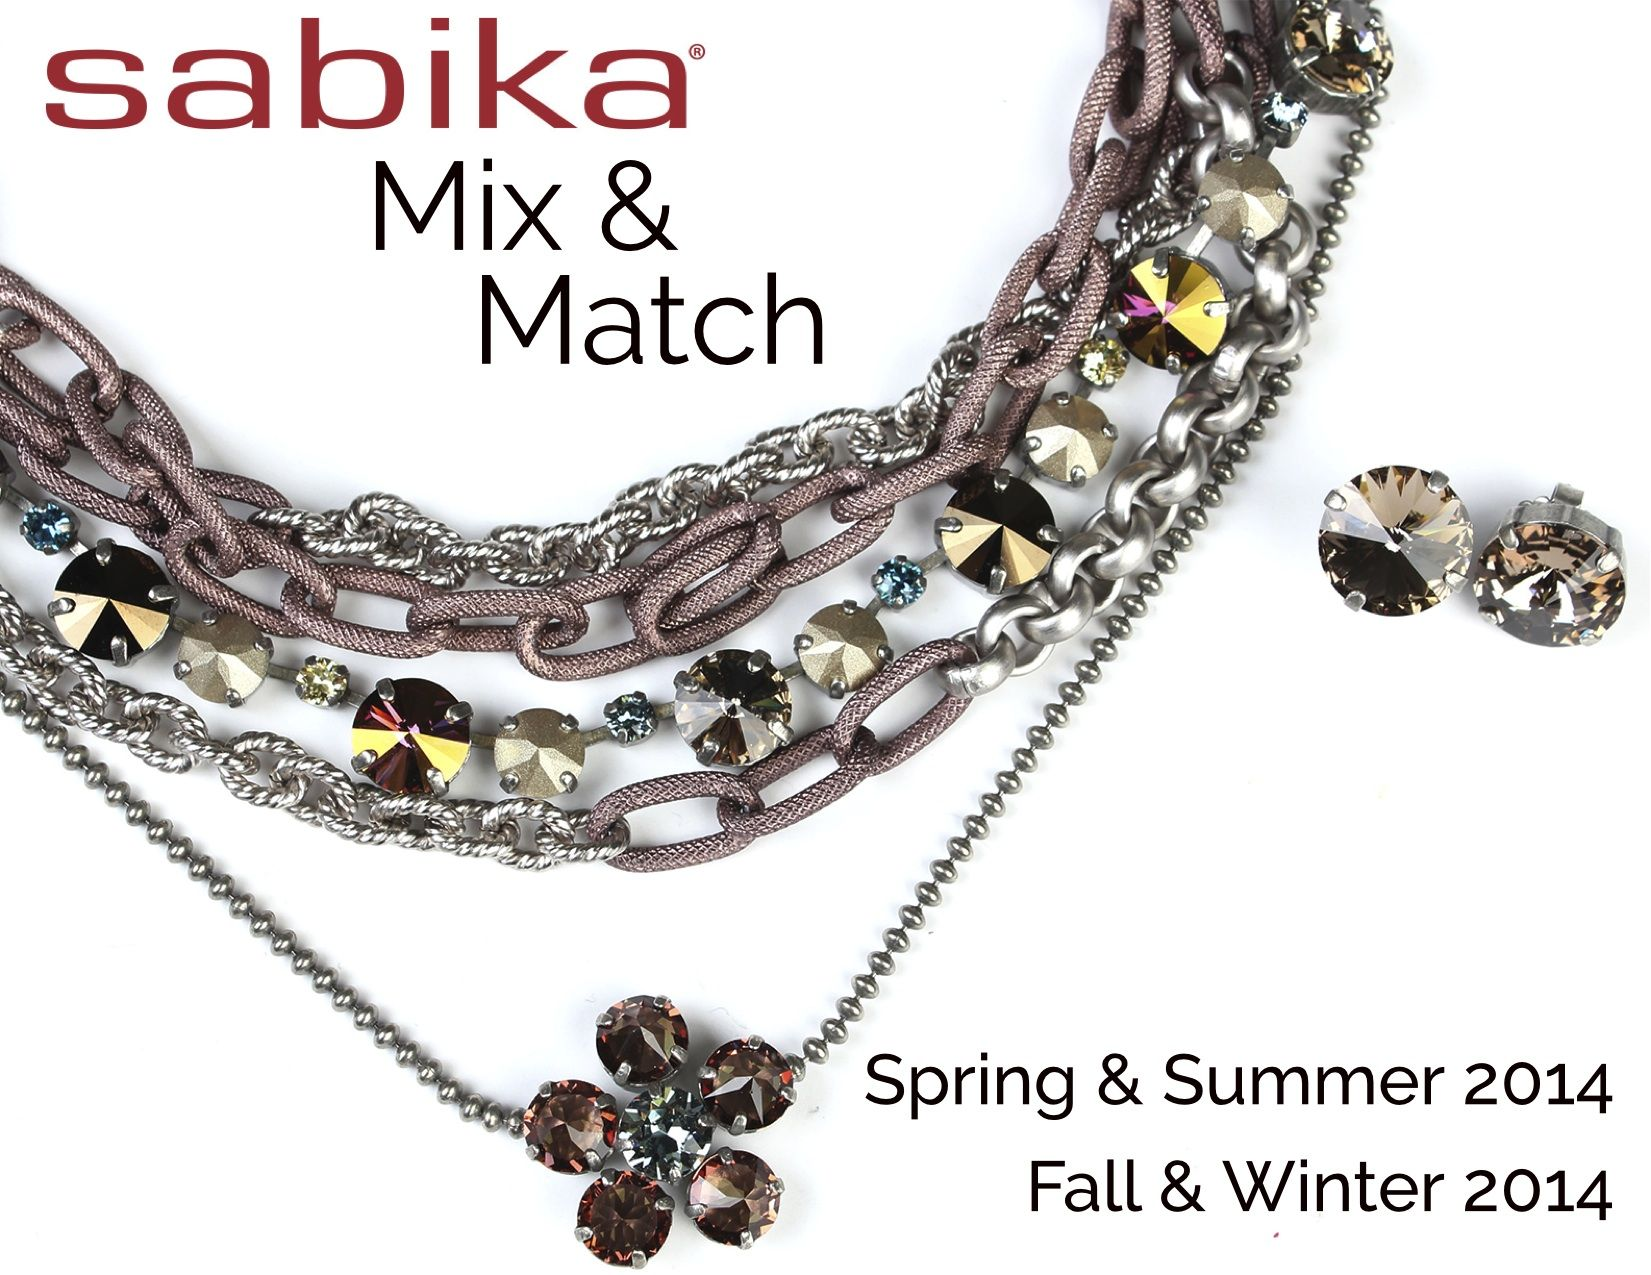 Sabika look necklace - Chains And Colors Sahara Dusk 3 Row Necklace Edition After Five Miami Tm